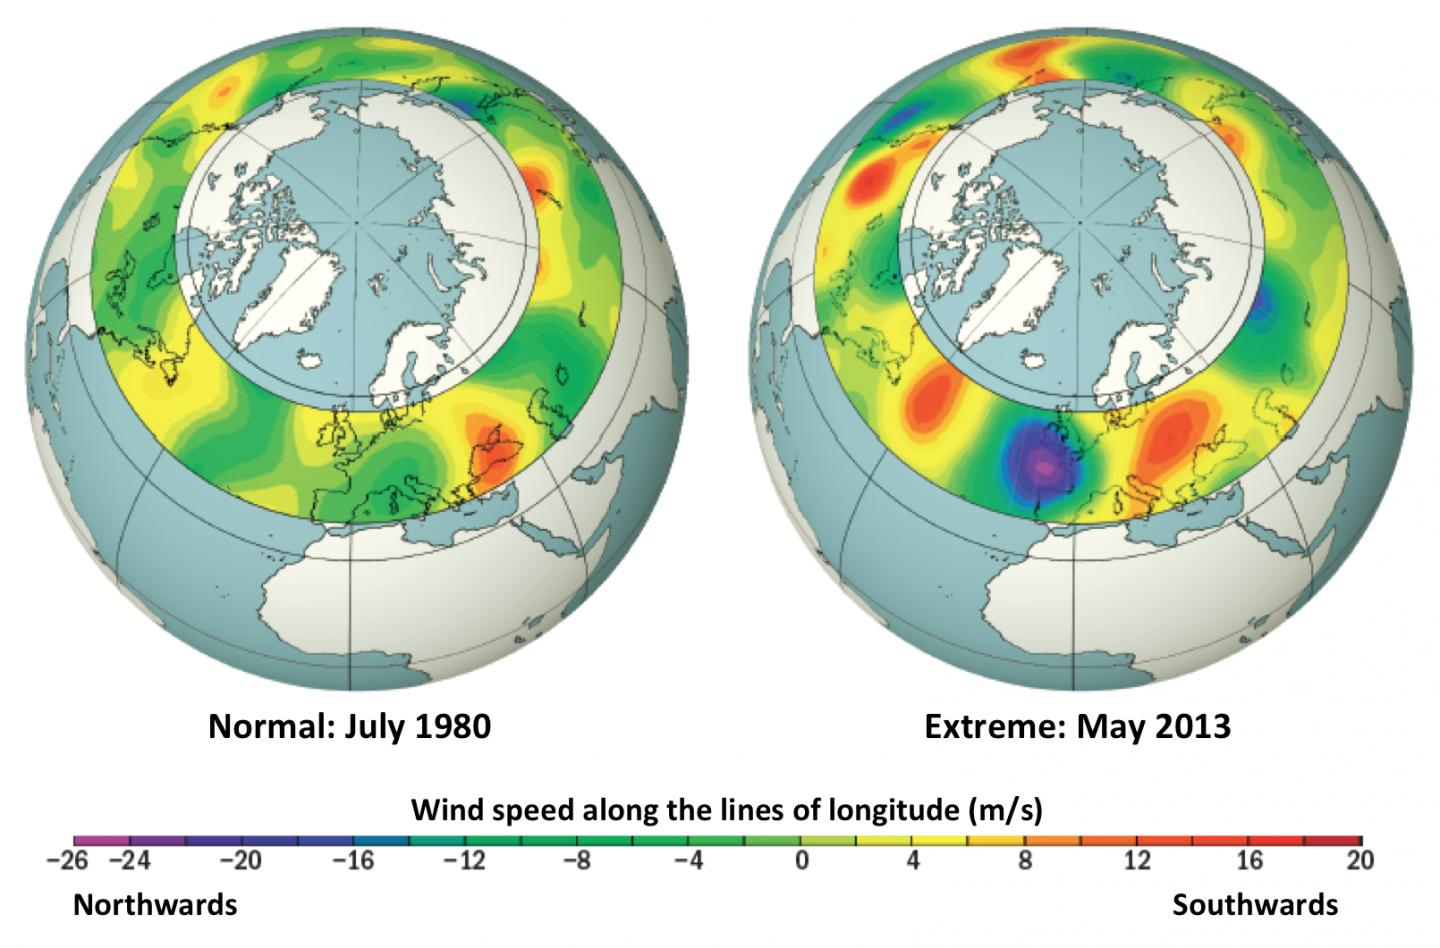 Another Manntastic claim: Extreme weather events linked to climate change impact on the jet stream